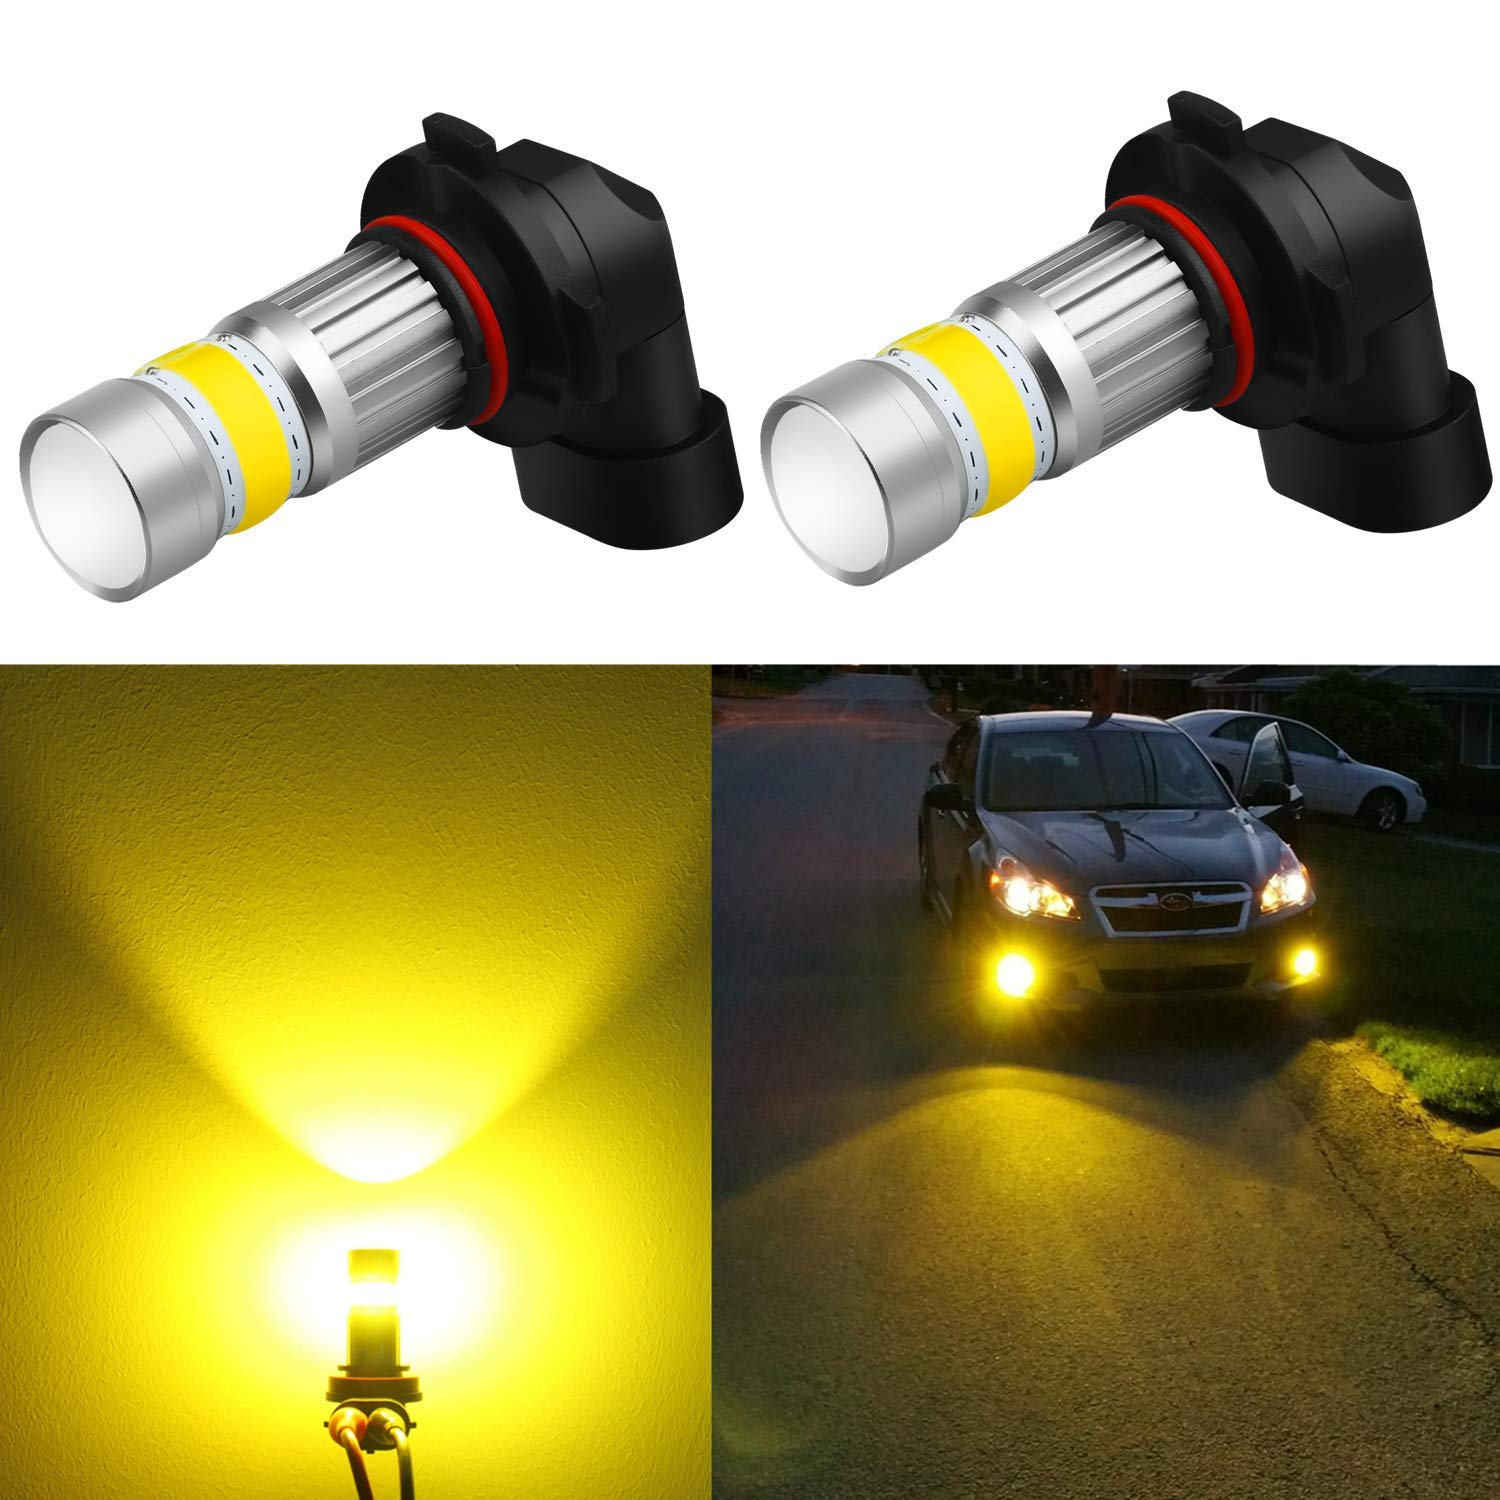 Alla Lighting 2800lm Xtreme Super Bright 9006 LED Bulbs Fog Light High Illumination COB-72 LED 9006 Bulb HB4 9006 Fog Lights Lamp Replacement - 3000K Amber Yellow